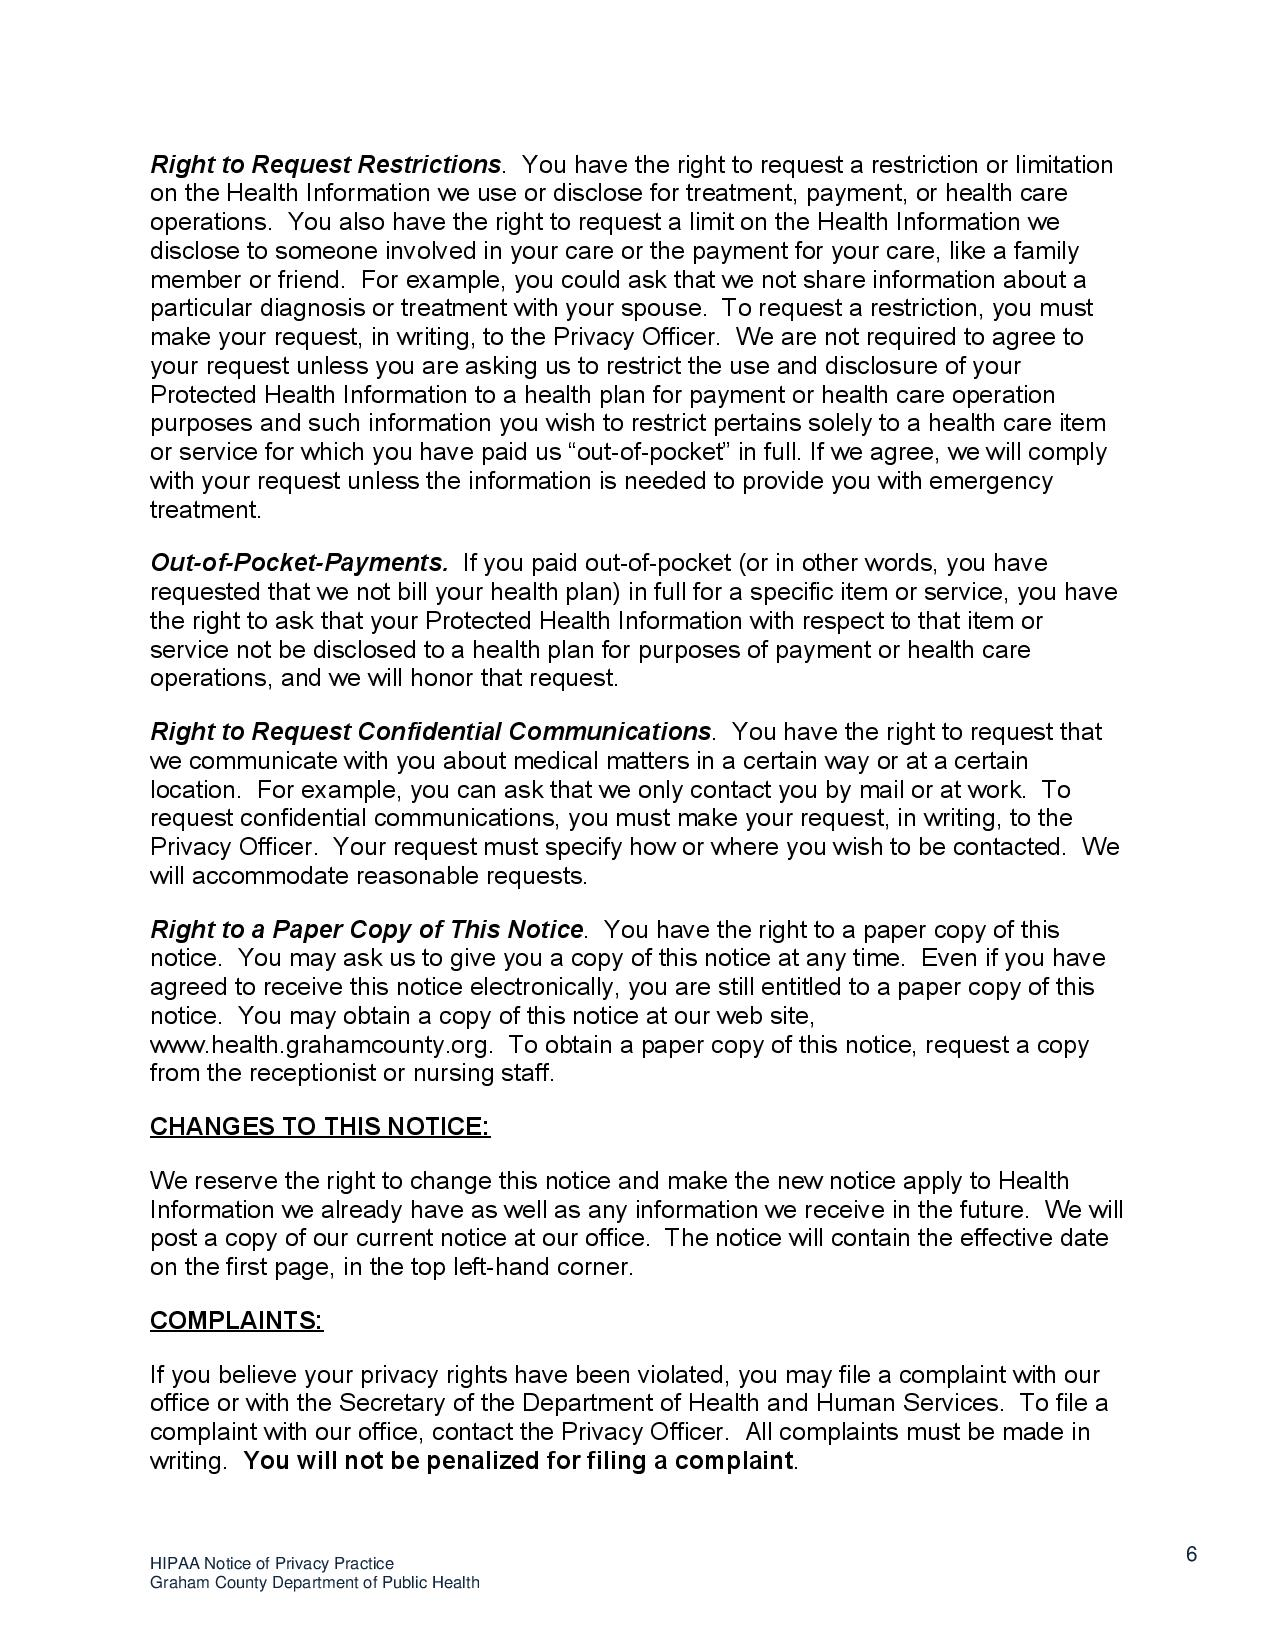 page 6 HIPAA Notice o f Privacy Practices